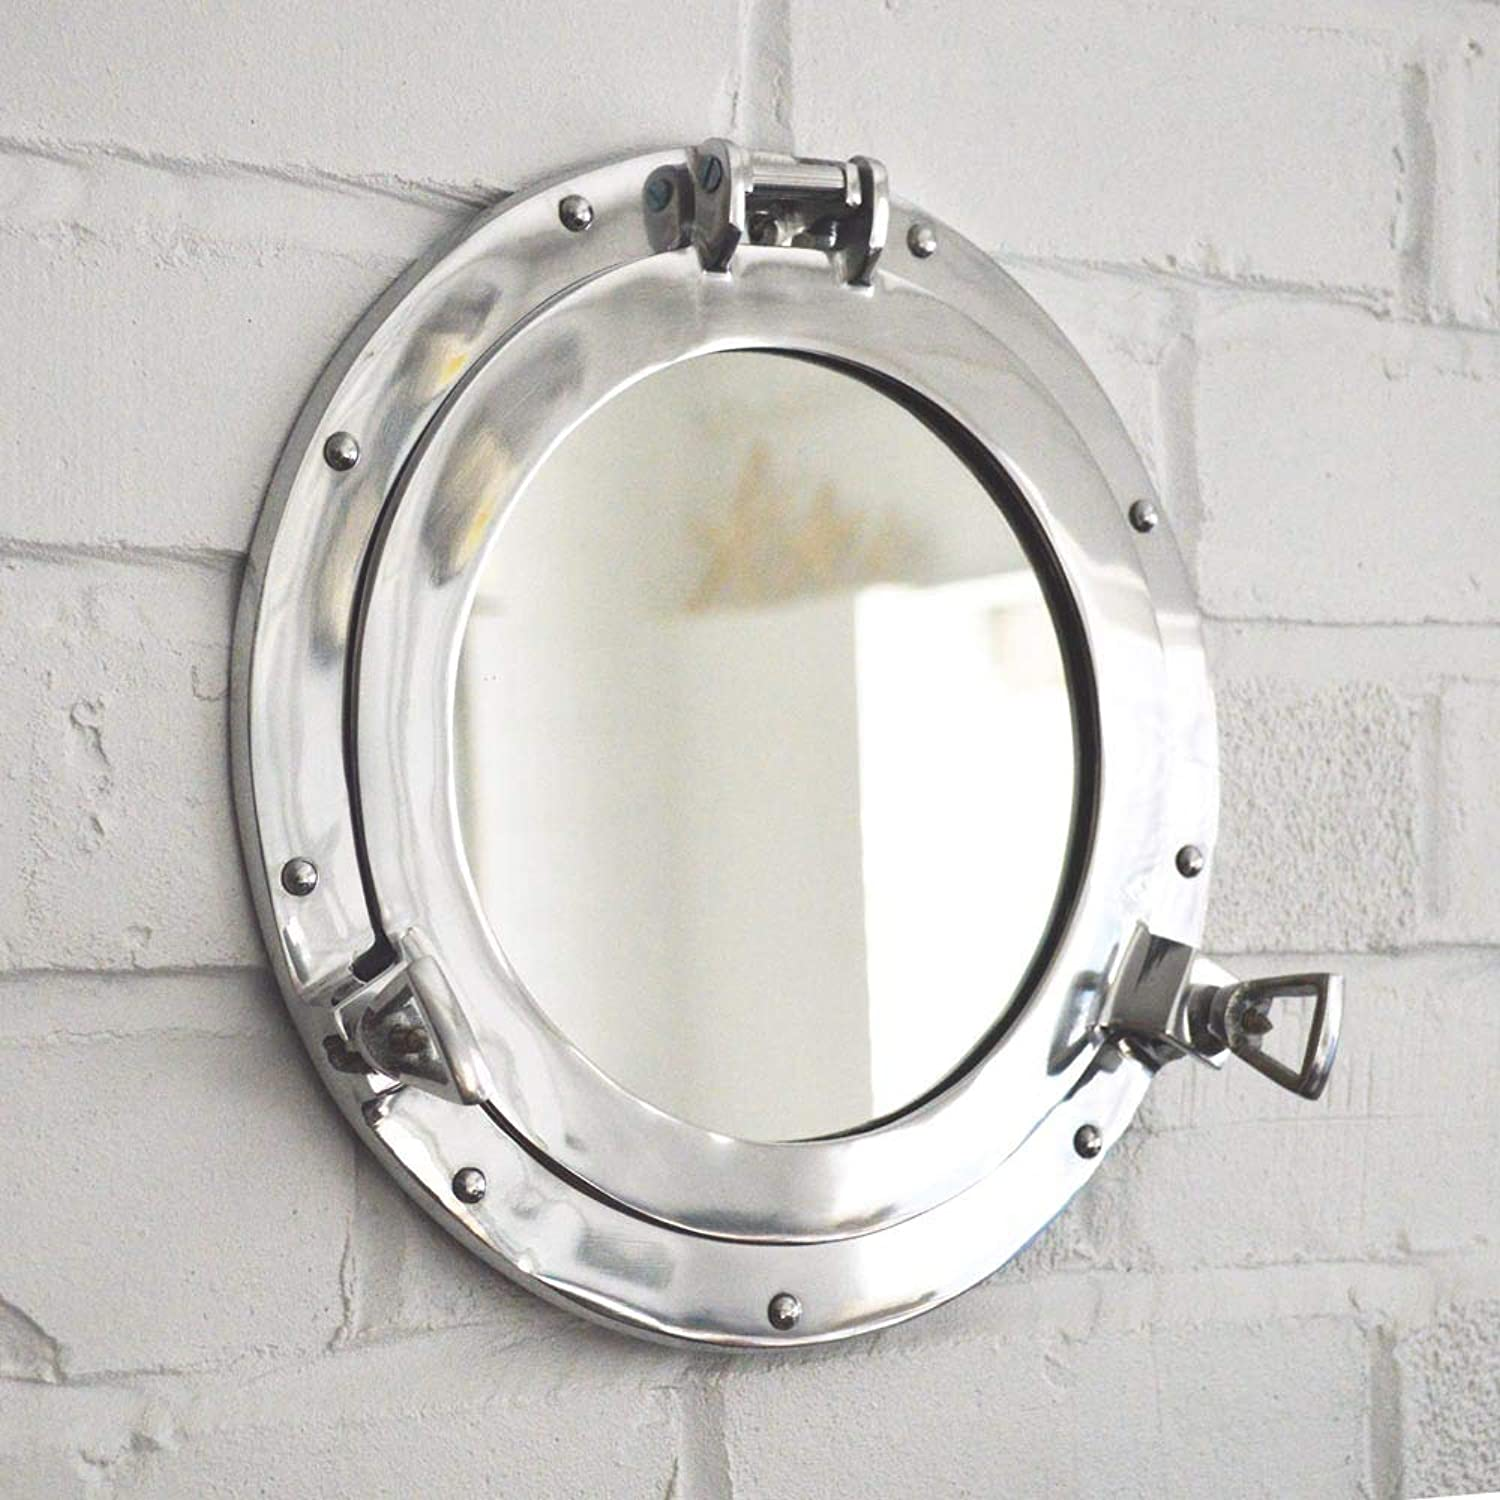 Hind Handicrafts Wall Mounted Vintage Nautical Ship Porthole Mirror for Home Decor   Pirate's Maritime Nautical Themed Decor   Vanity Mirror (20 INCHES, Nickel Chrome)